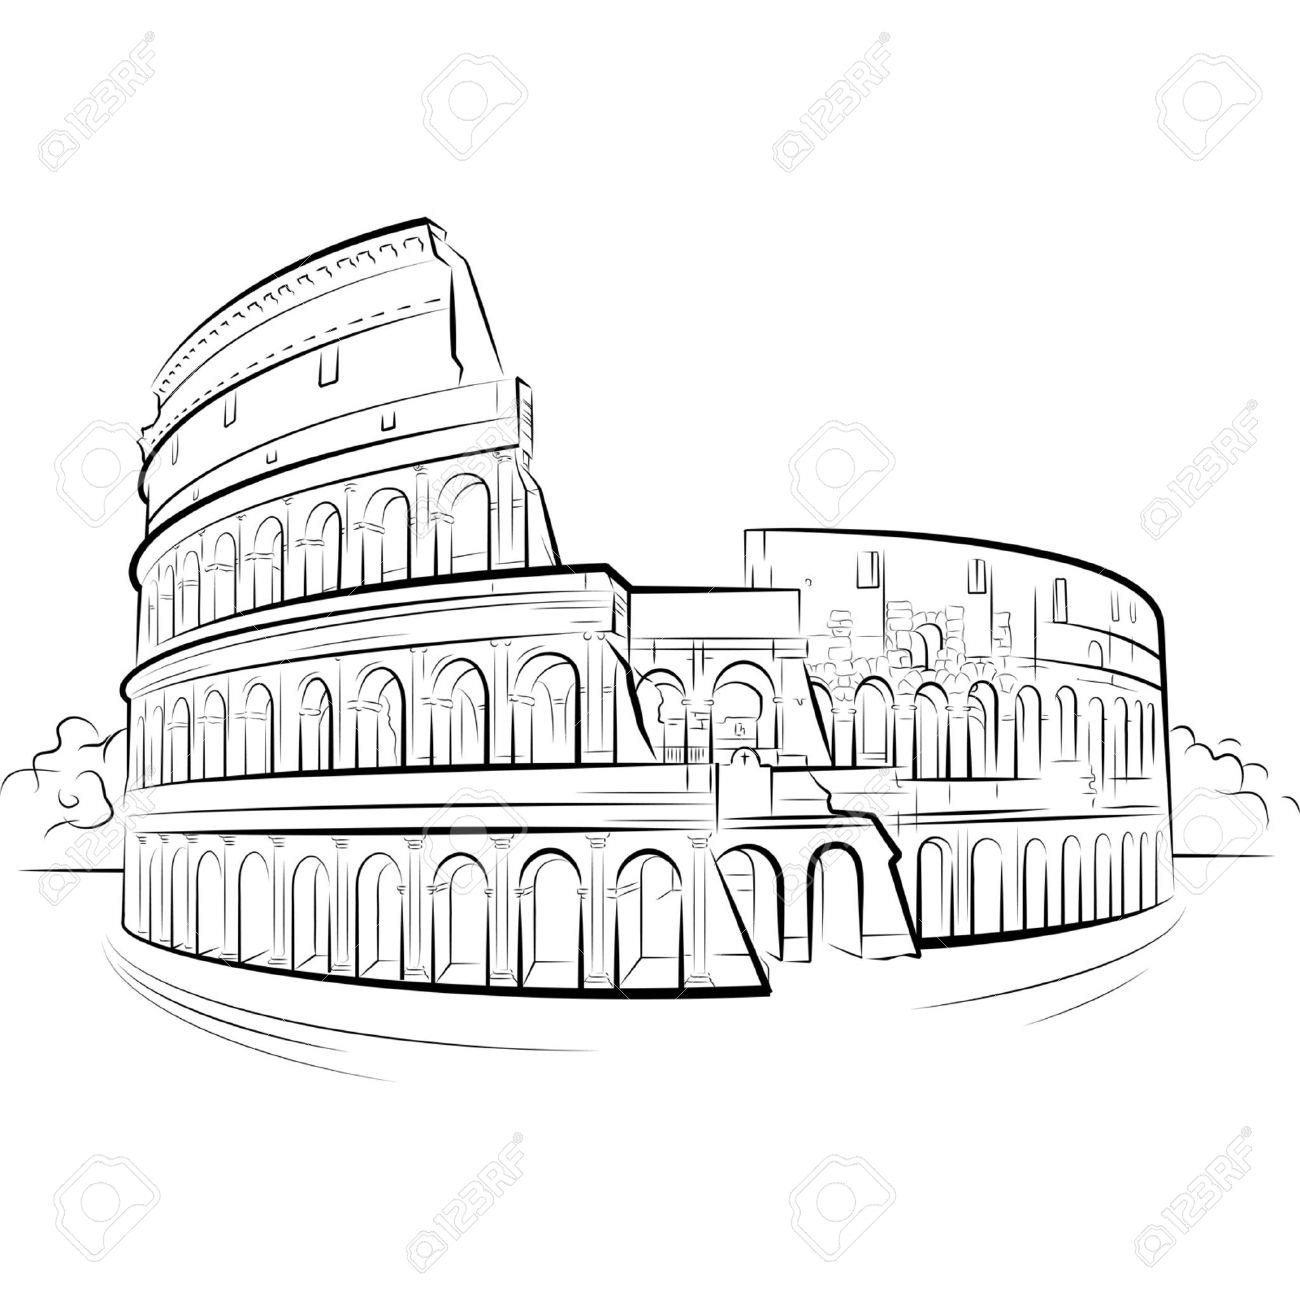 1300x1300 Colosseum Italy Drawing Elegant Drawing Colosseum Rome Italy